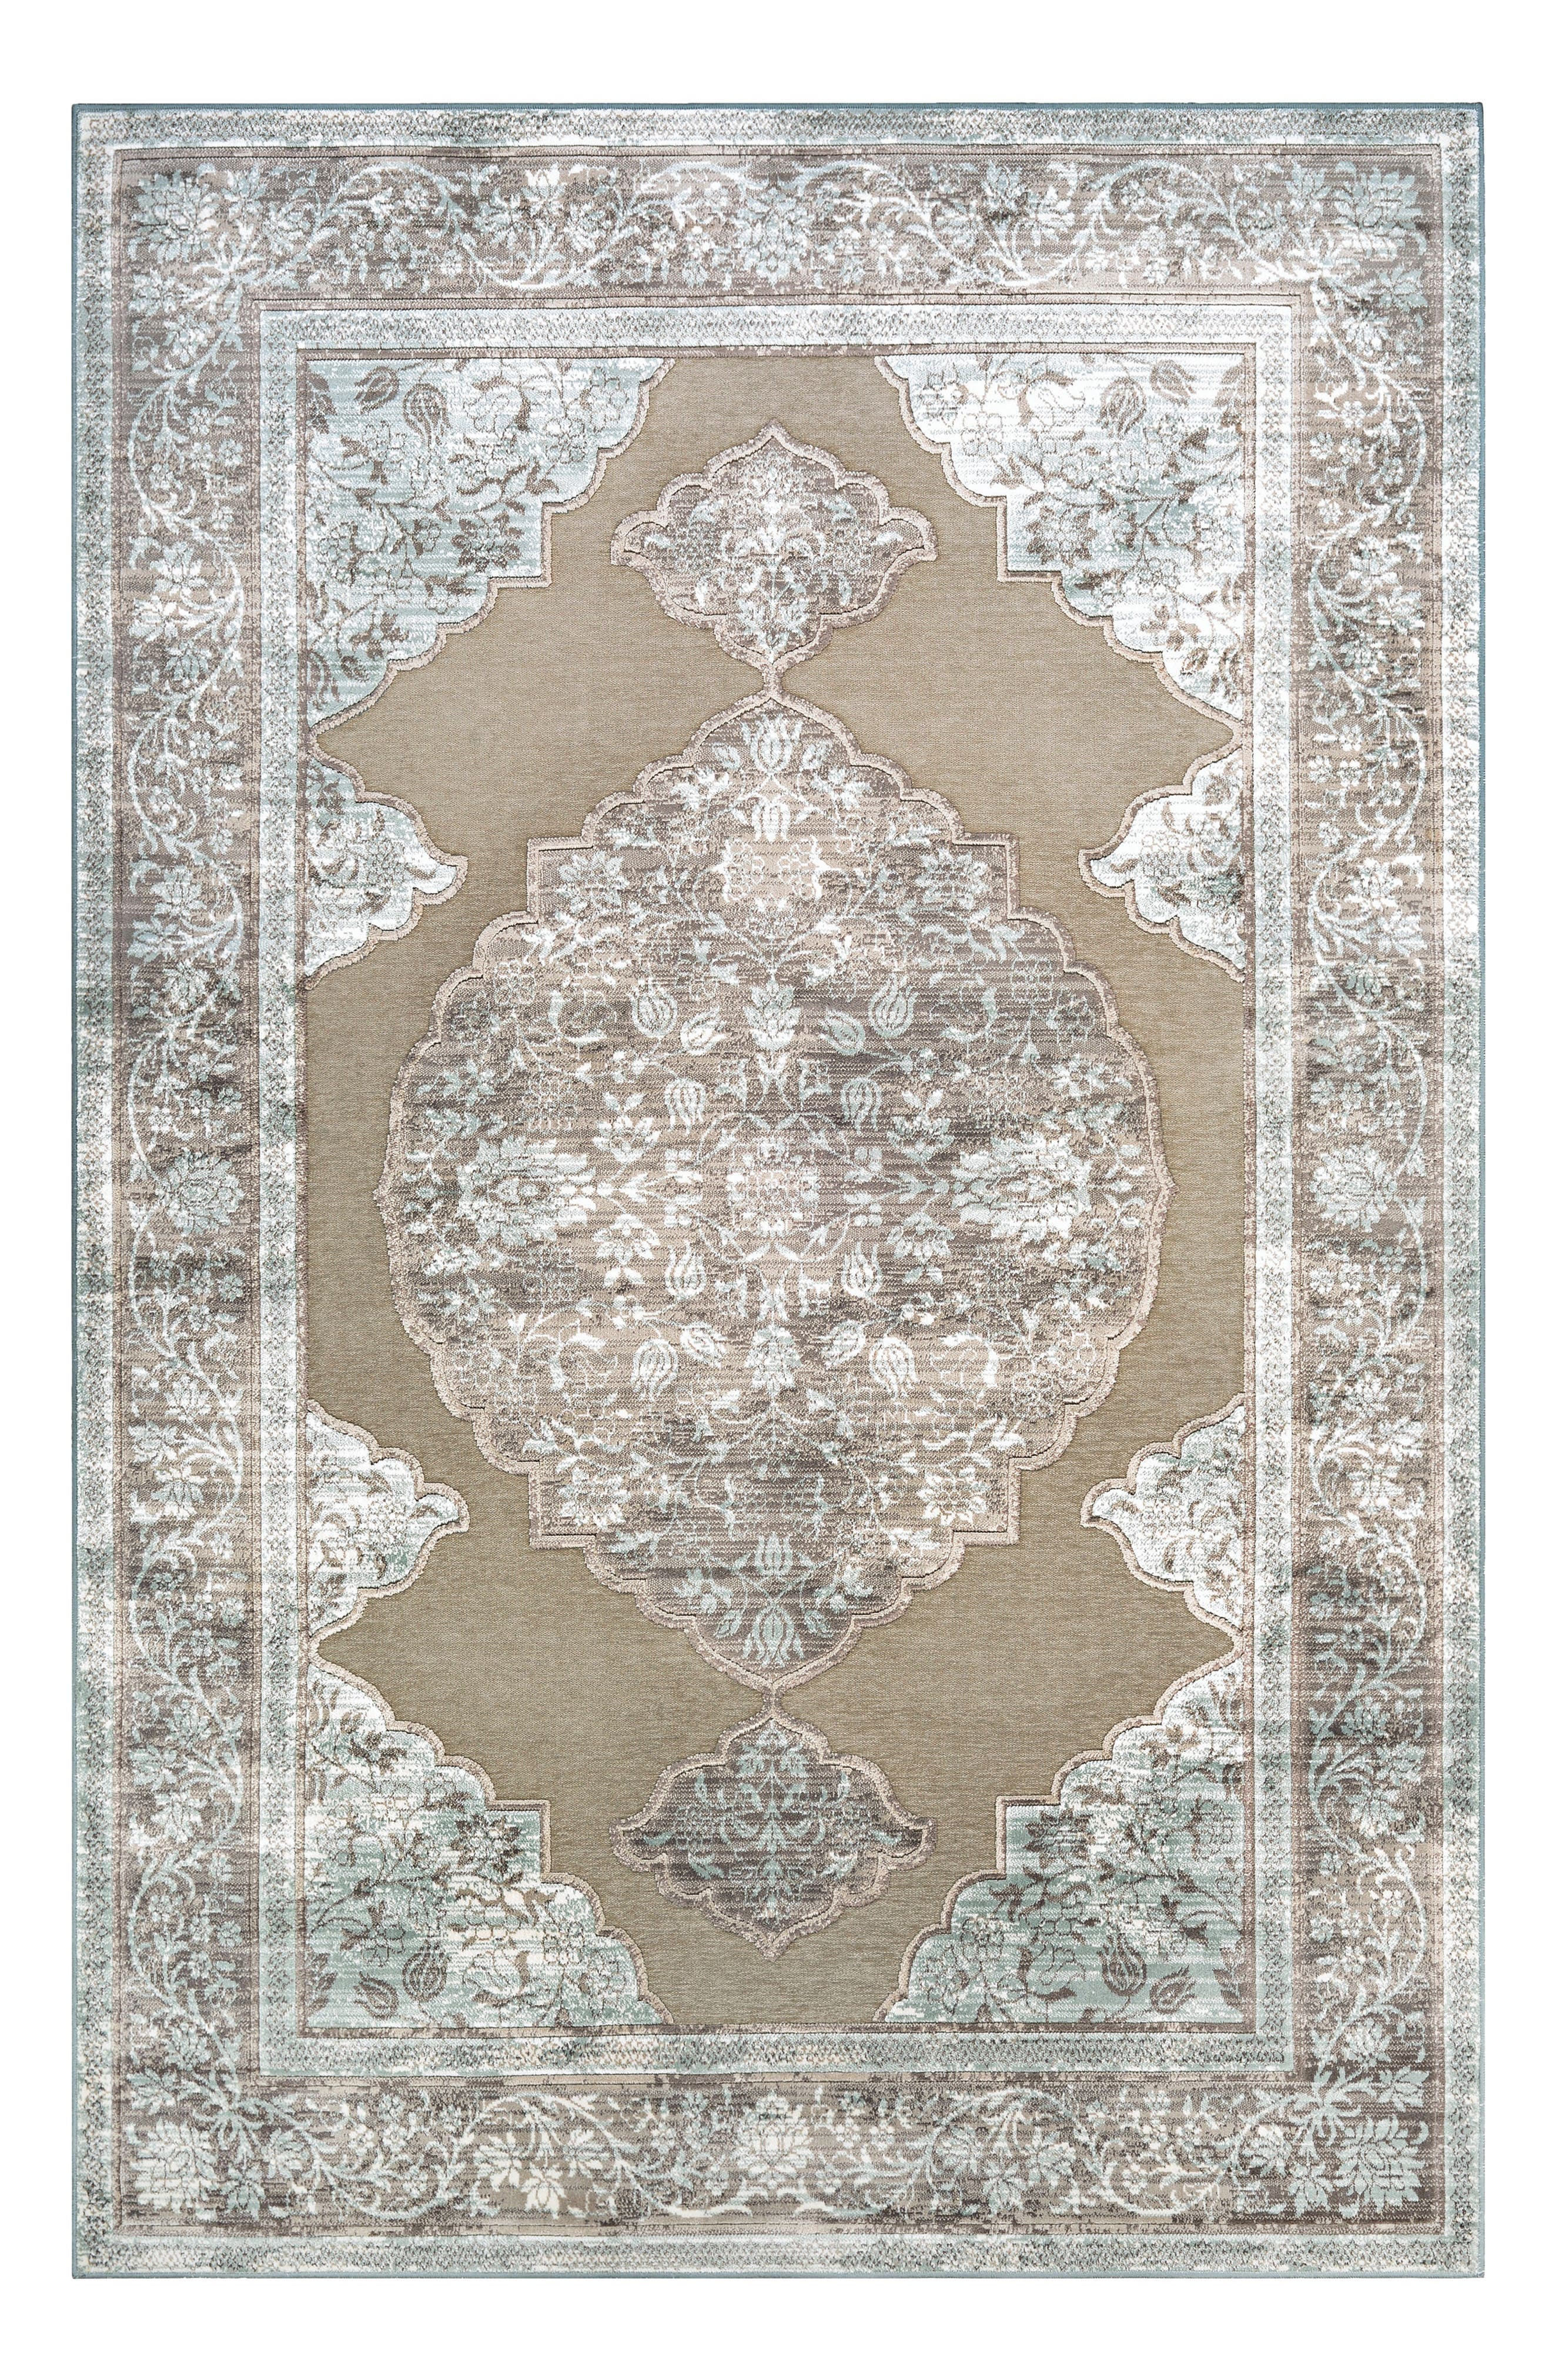 Alternate Image 1 Selected - Couristan Cire Floral Medallion Area Rug